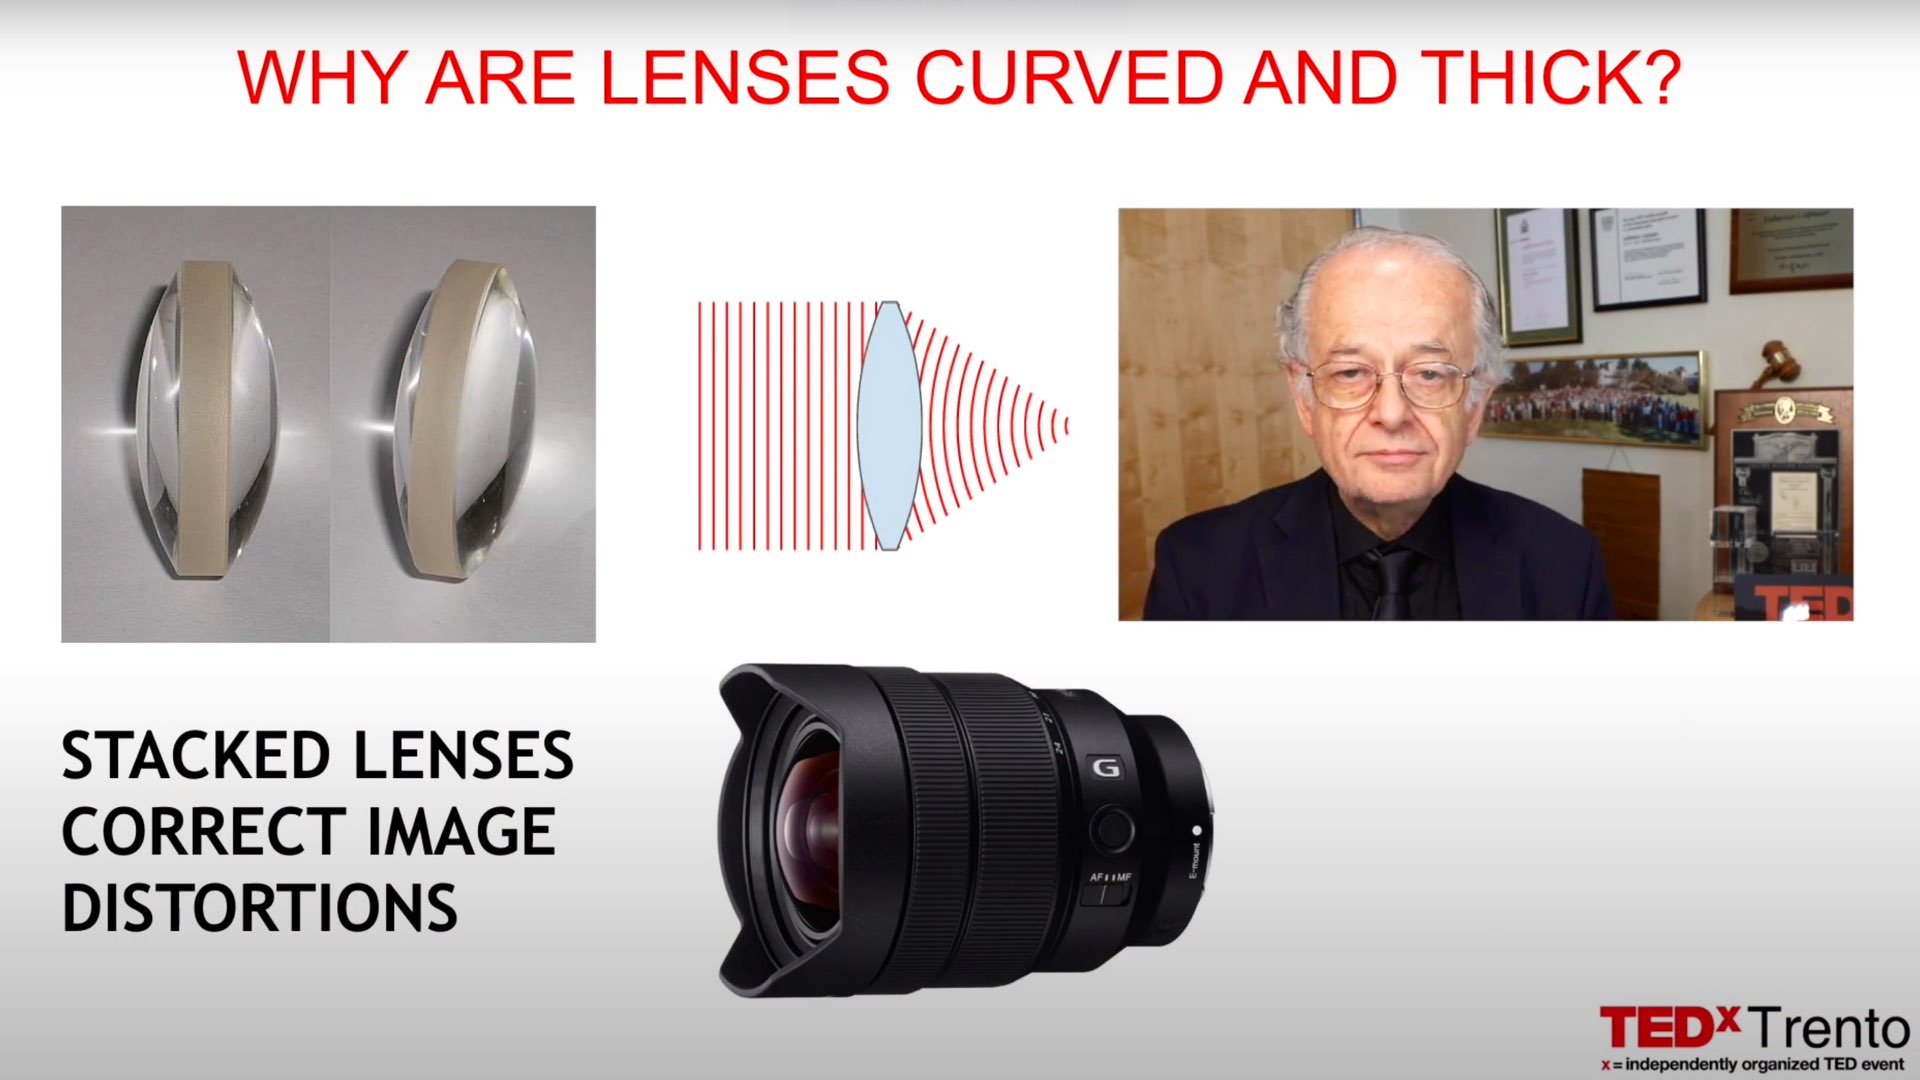 The Future of Imaging? Metalenses and Spaceplates Allow Lens-Free Cameras and With Bigger Sensors